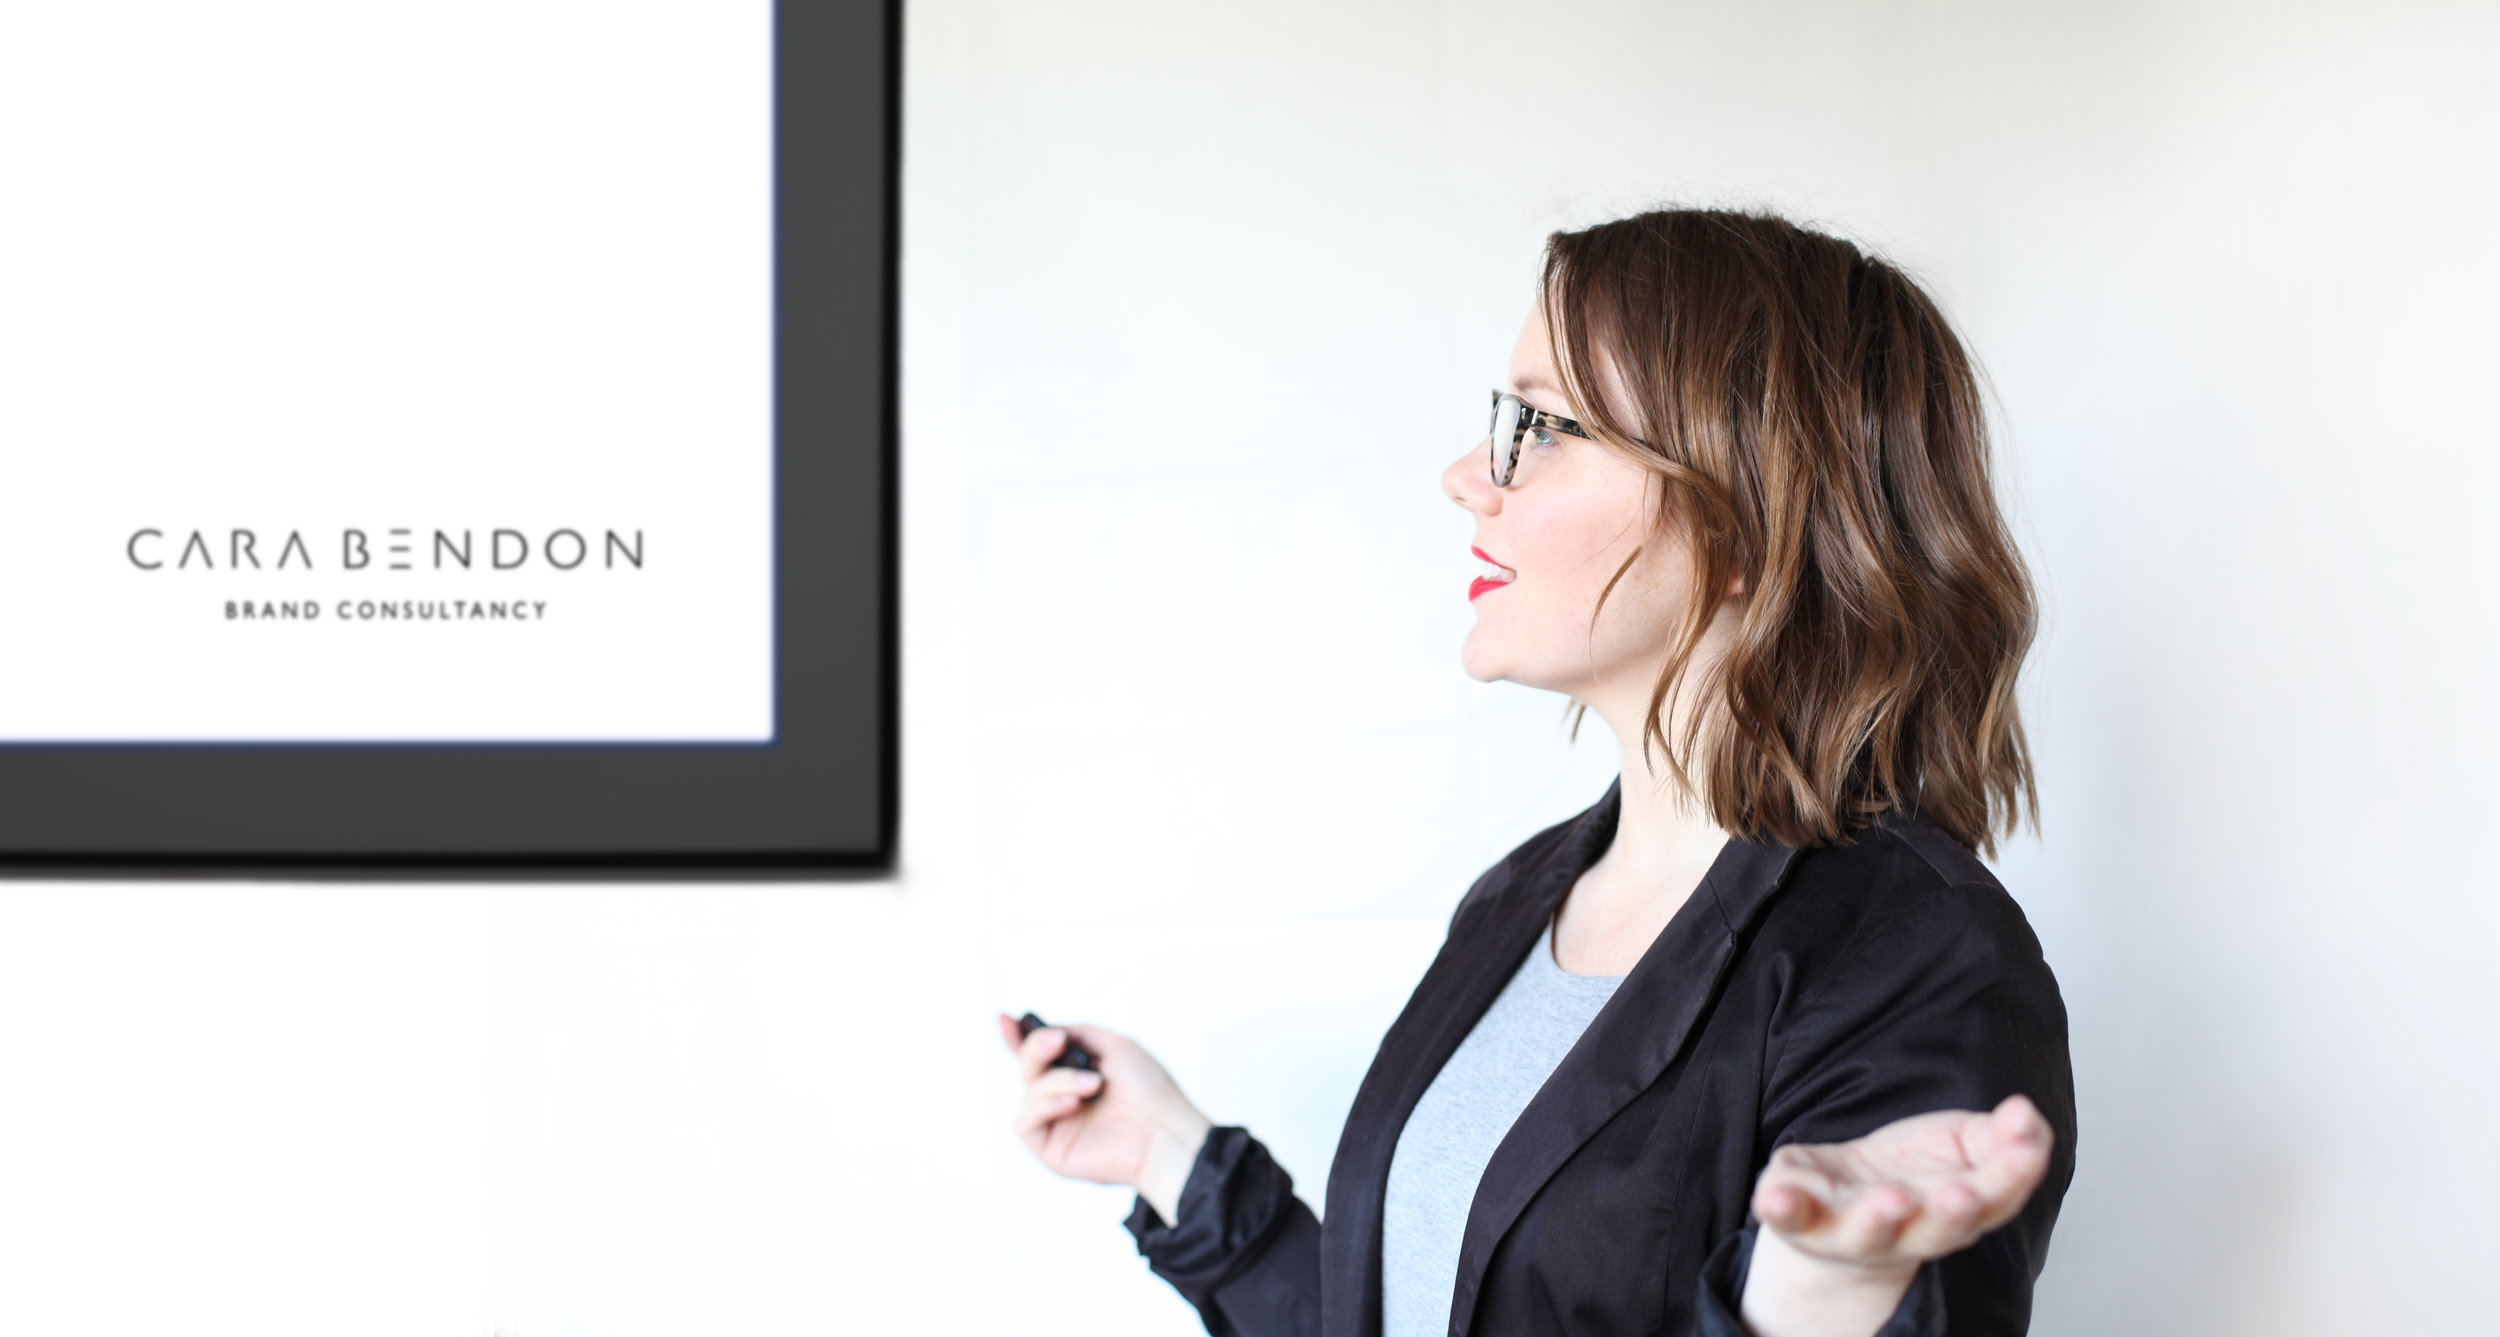 Looking for a branding, marketing or advertising speaker? - Whether you would like someone to come in and talk to your team about your company's brand, or help present a new service or sub-brand to stakeholders; Cara is a natural speaker, able to convey complex strategies in a simple and effective way.